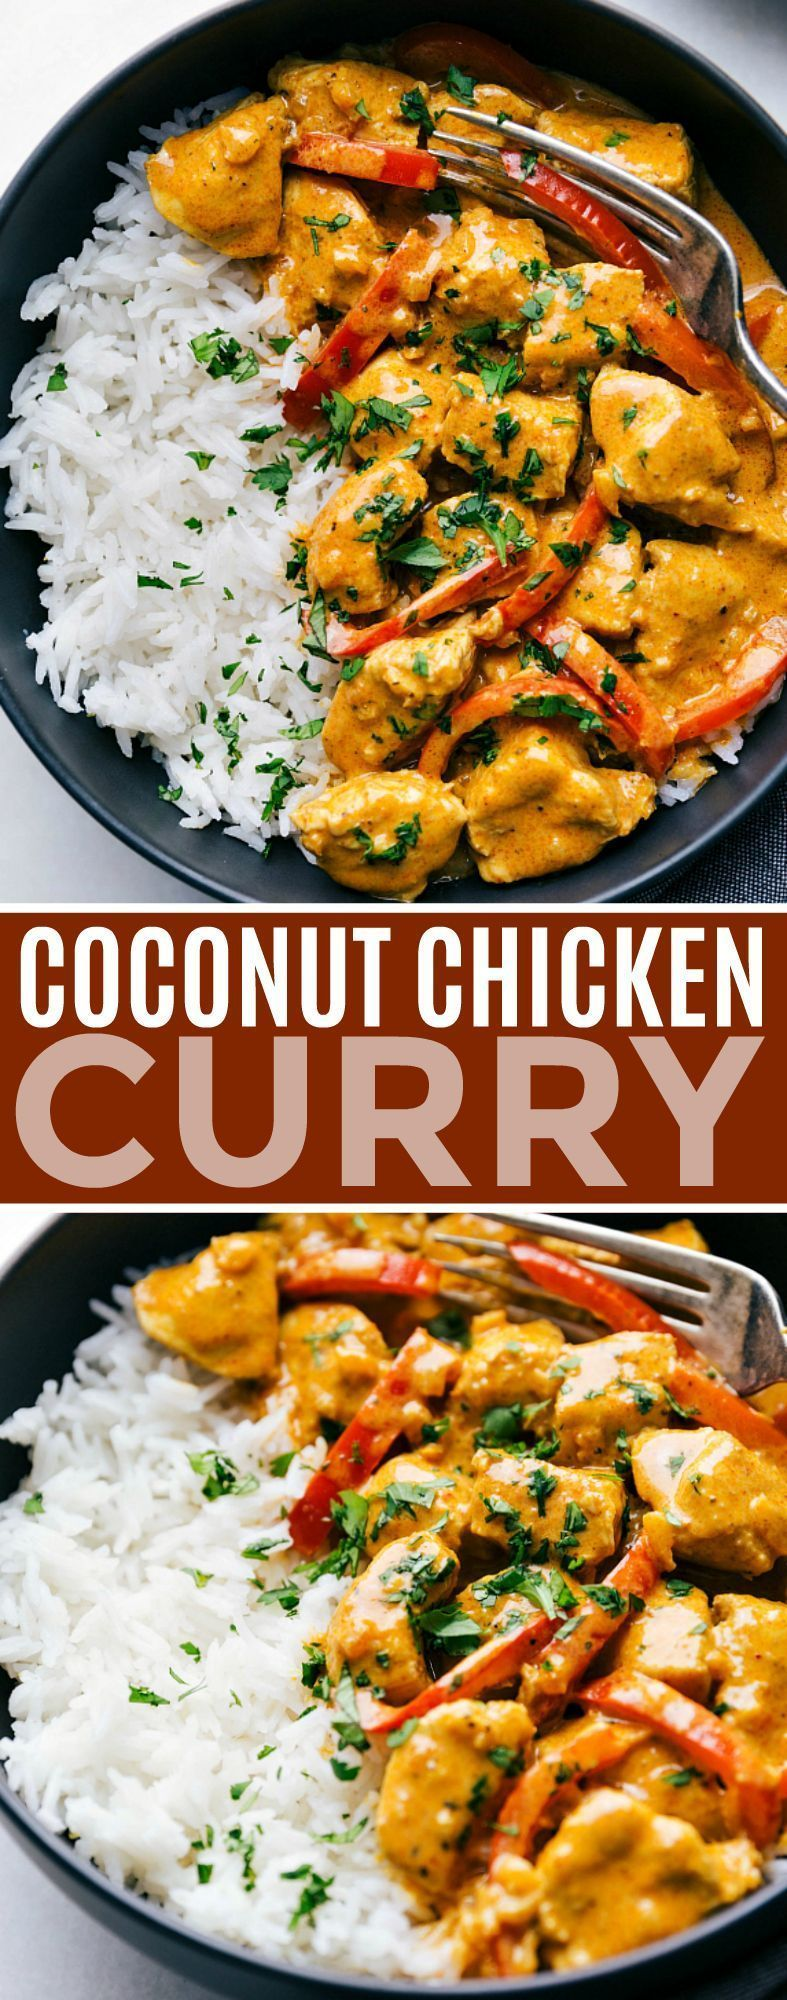 Coconut Chicken Curry -  This coconut chicken curry can be made in one pot and is packed with delicious flavors! This curry  - #antiquedecor #apartmentdecor #bedroomdecor #chicken #coconut #curry #hamburgermeatrecipes #homedecor #mushroomrecipes #pioneerwomanrecipes #ramennoodlerecipes #sausagerecipes #tacorecipes #thairecipes #whole30recipes #healthy dinner whole 30